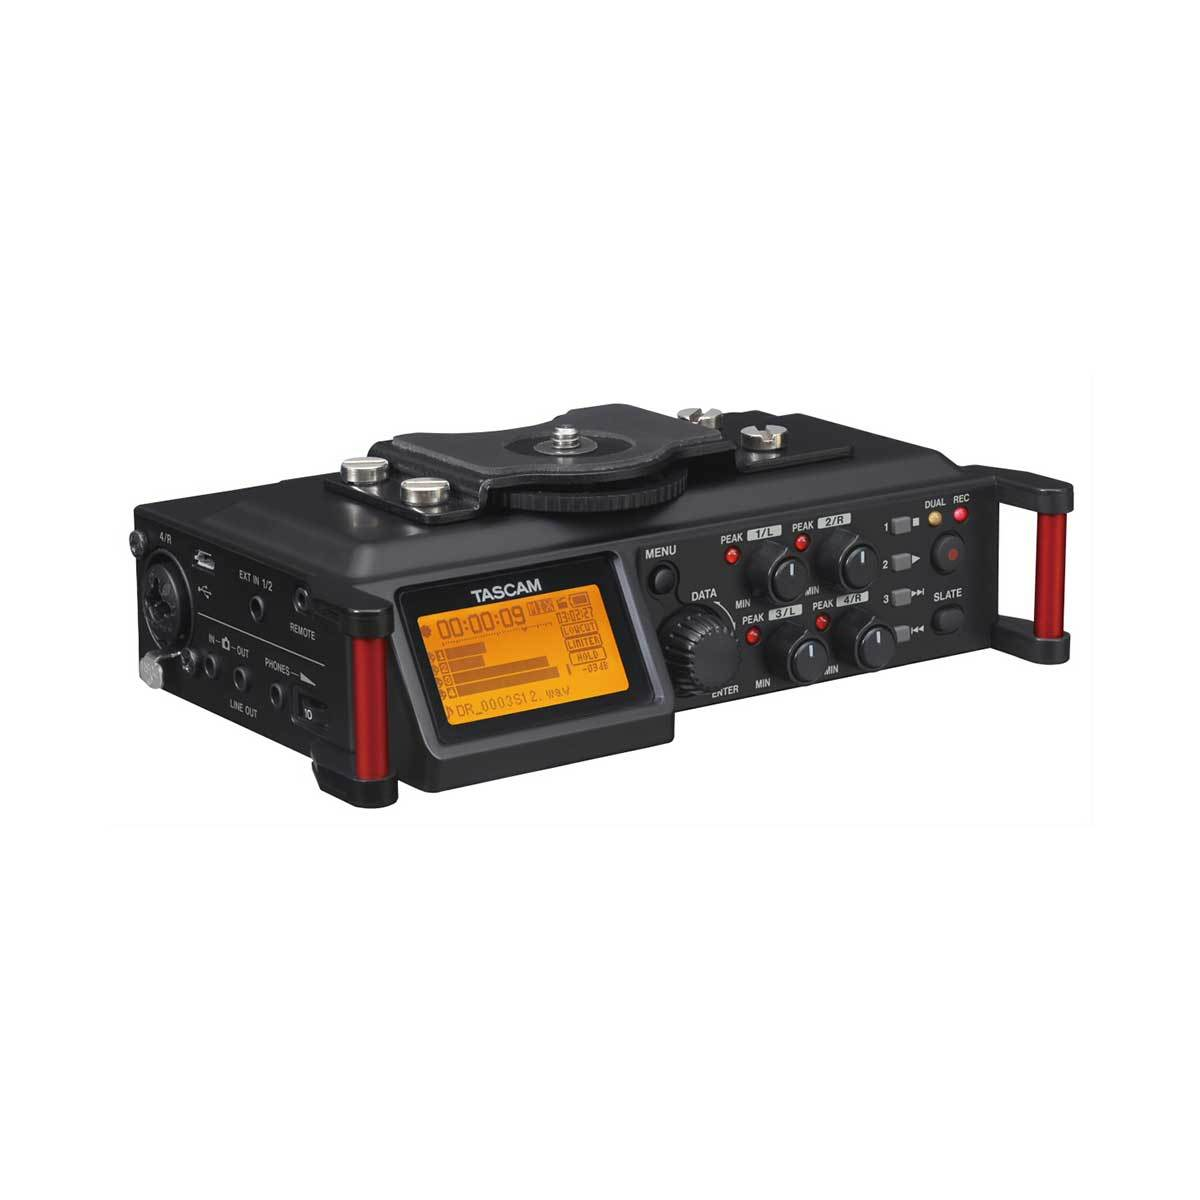 TASCAM DR-70D Four-track PCM Recorder for DSLR Video Production